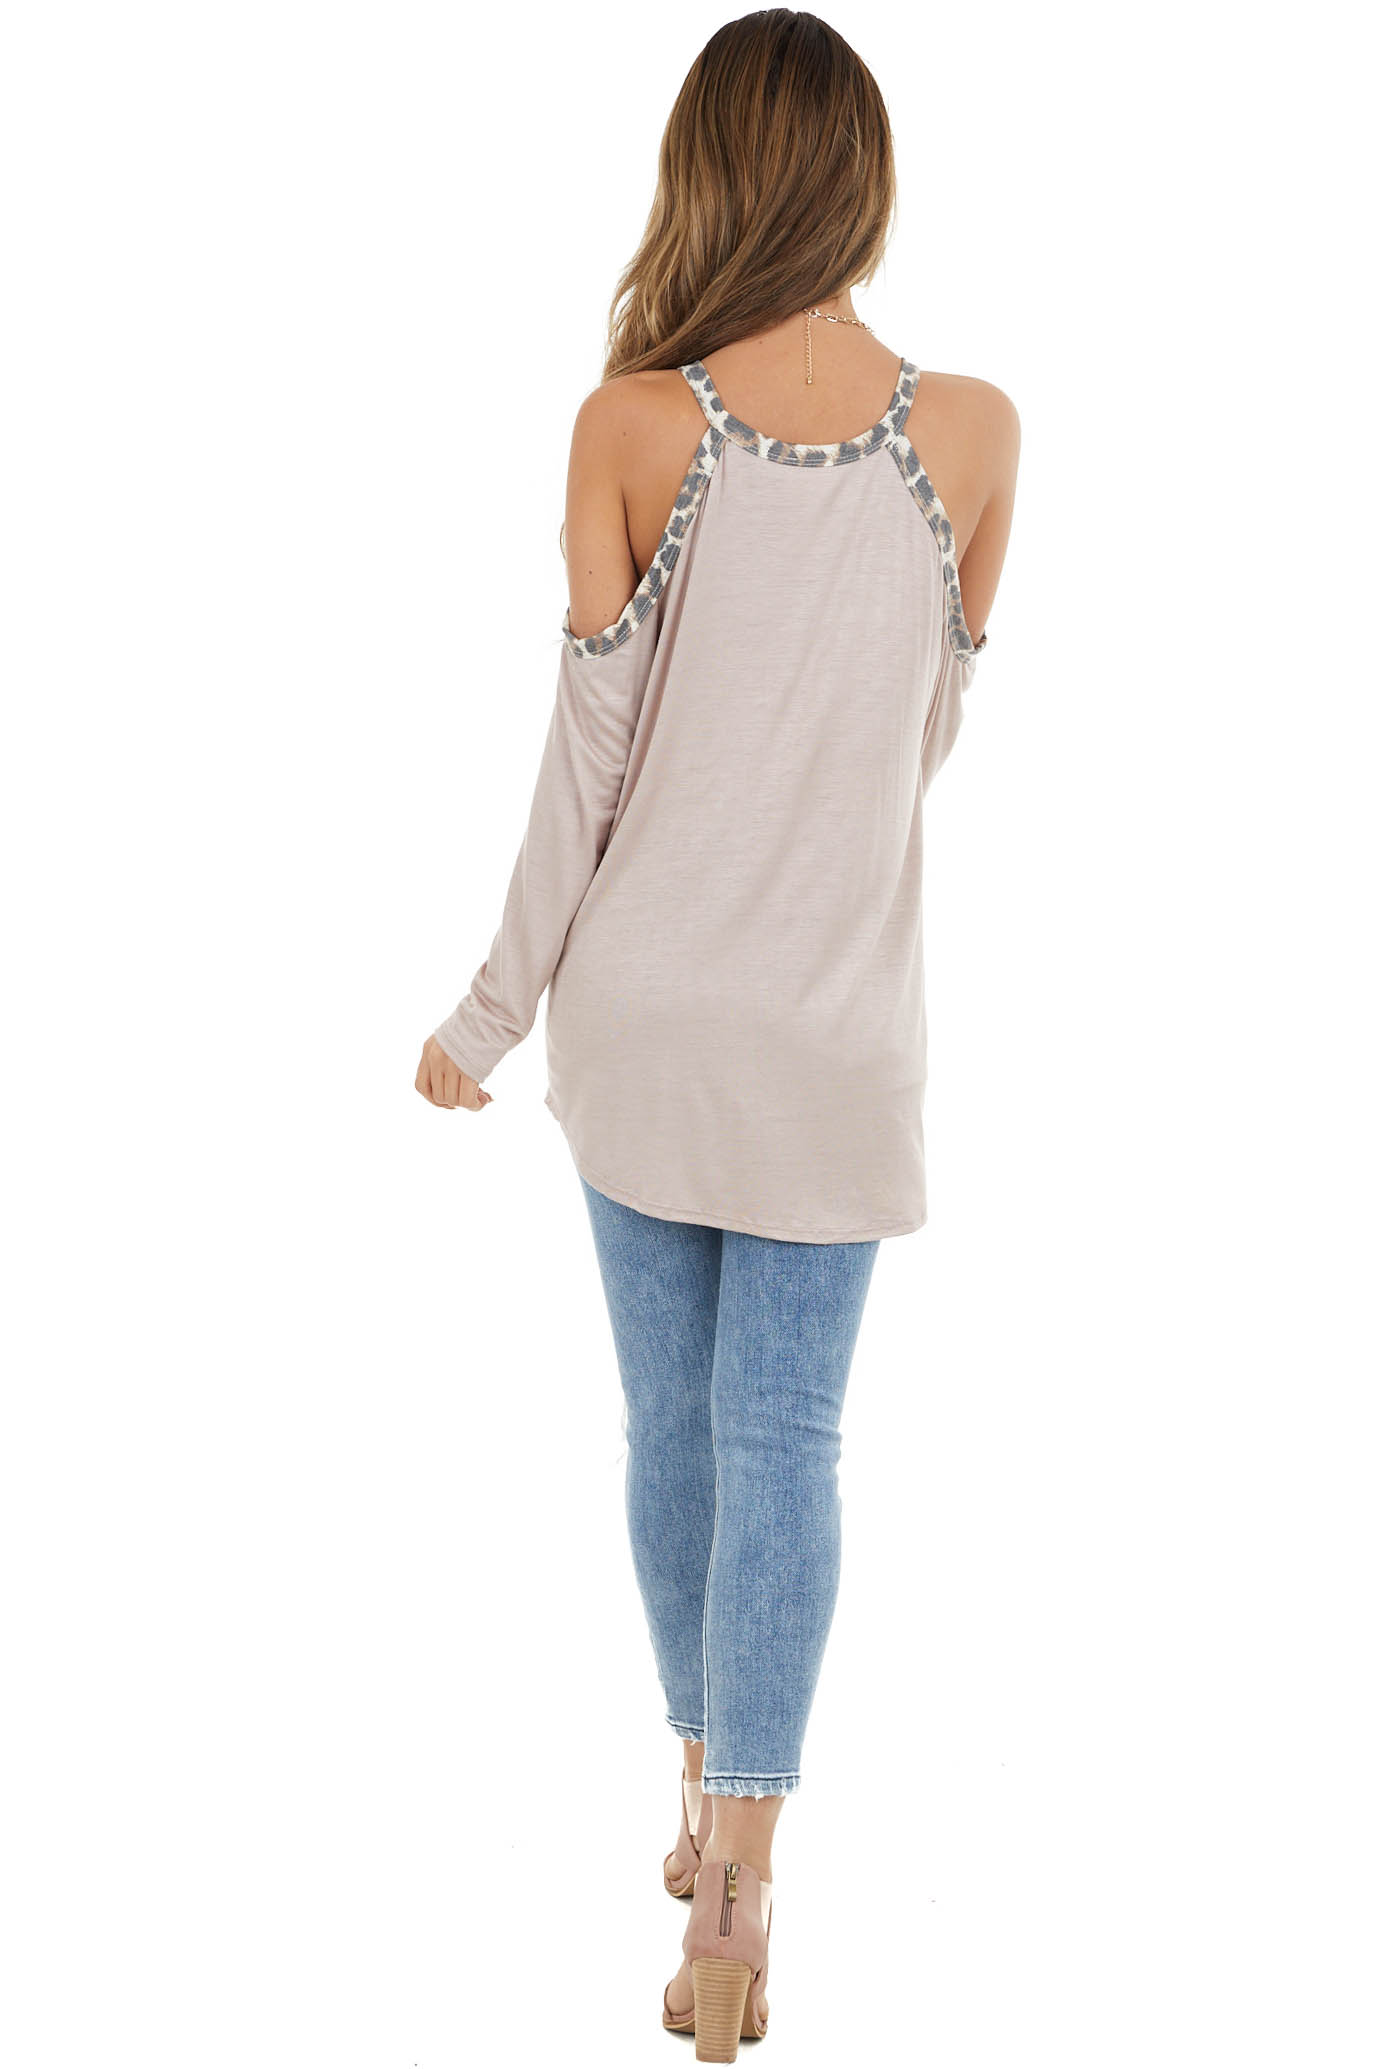 Light Mocha Cold Shoulder Long Sleeve Top with Leopard Print